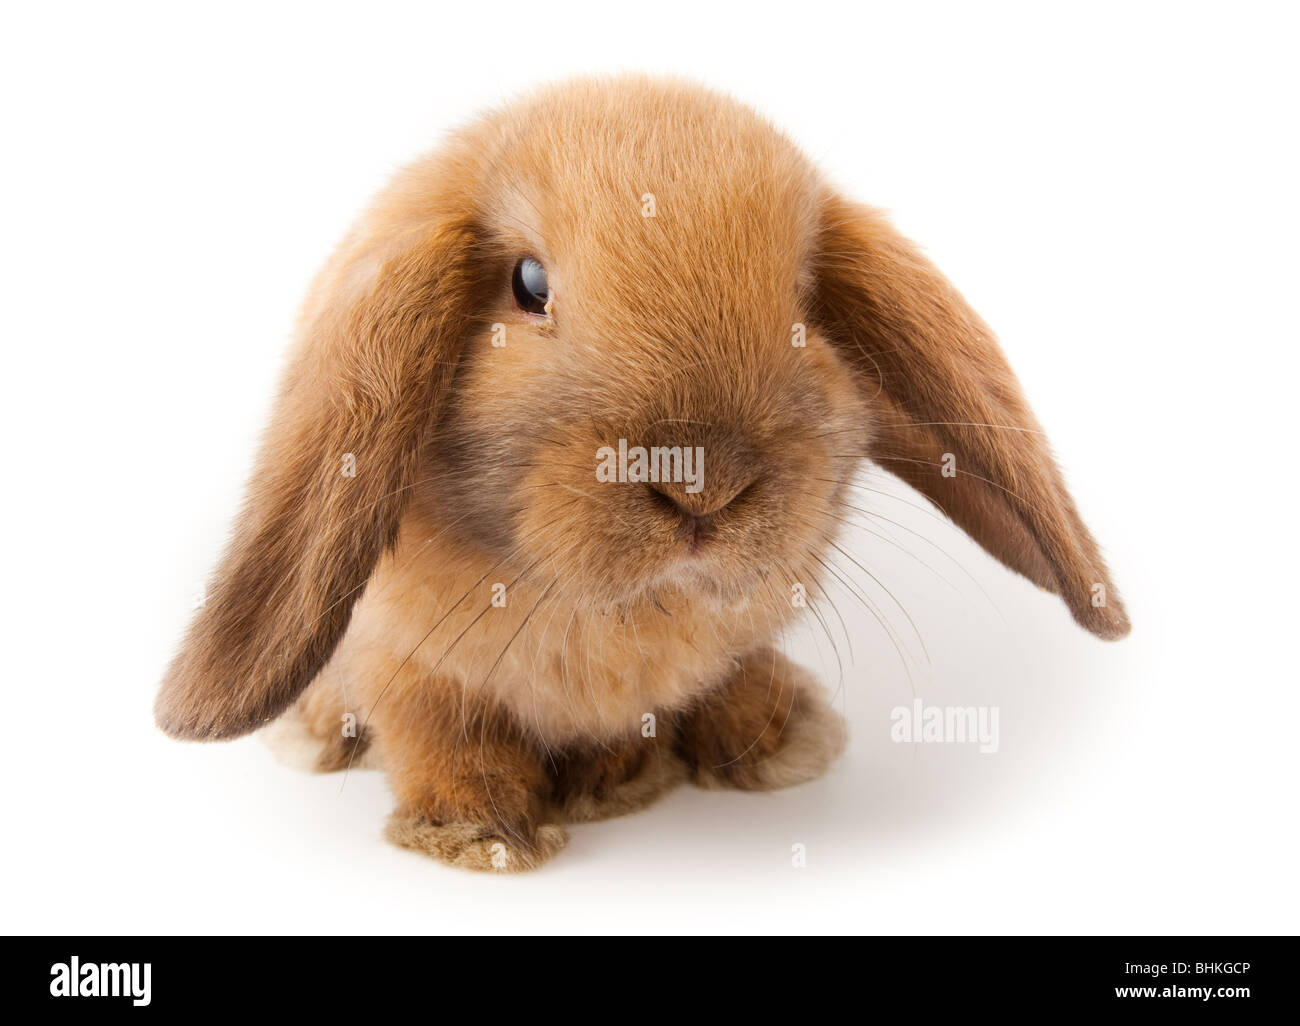 Miniature Lop, rabbit. It is cut out on a white background. - Stock Image